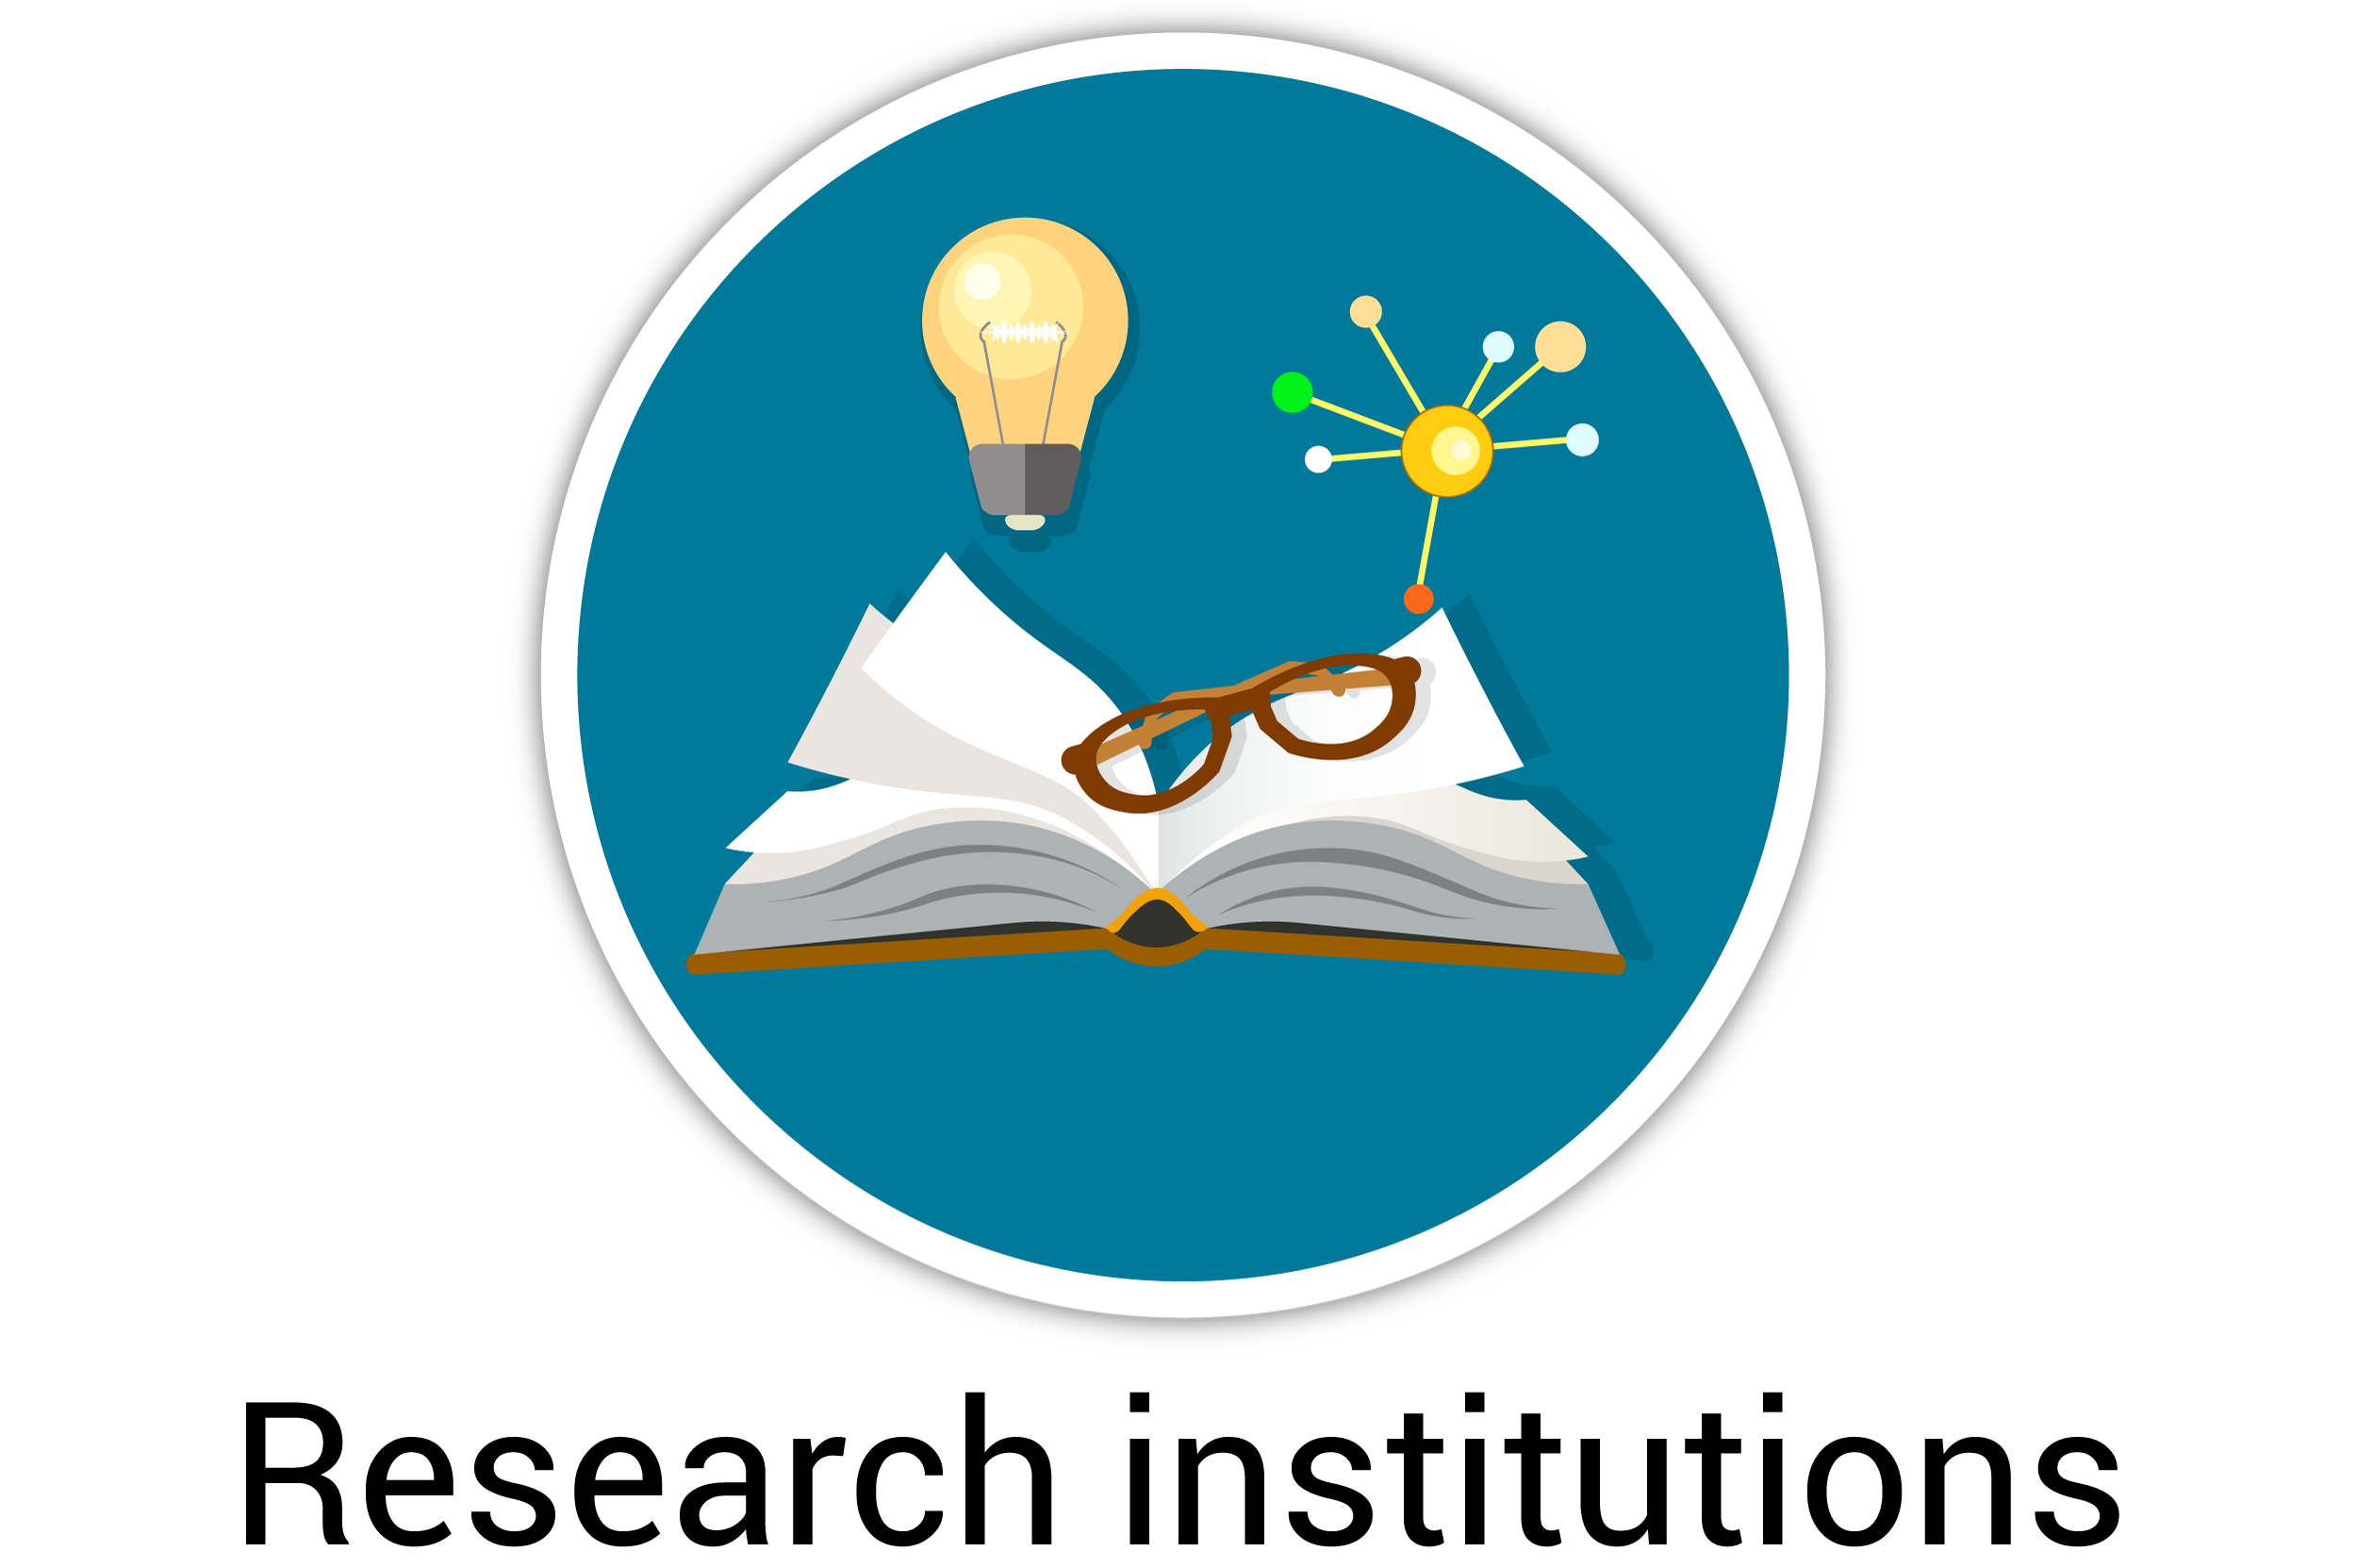 reseach Question your questions your research question is the first step to putting your  ideas into action the process involves forming viable research questions that.